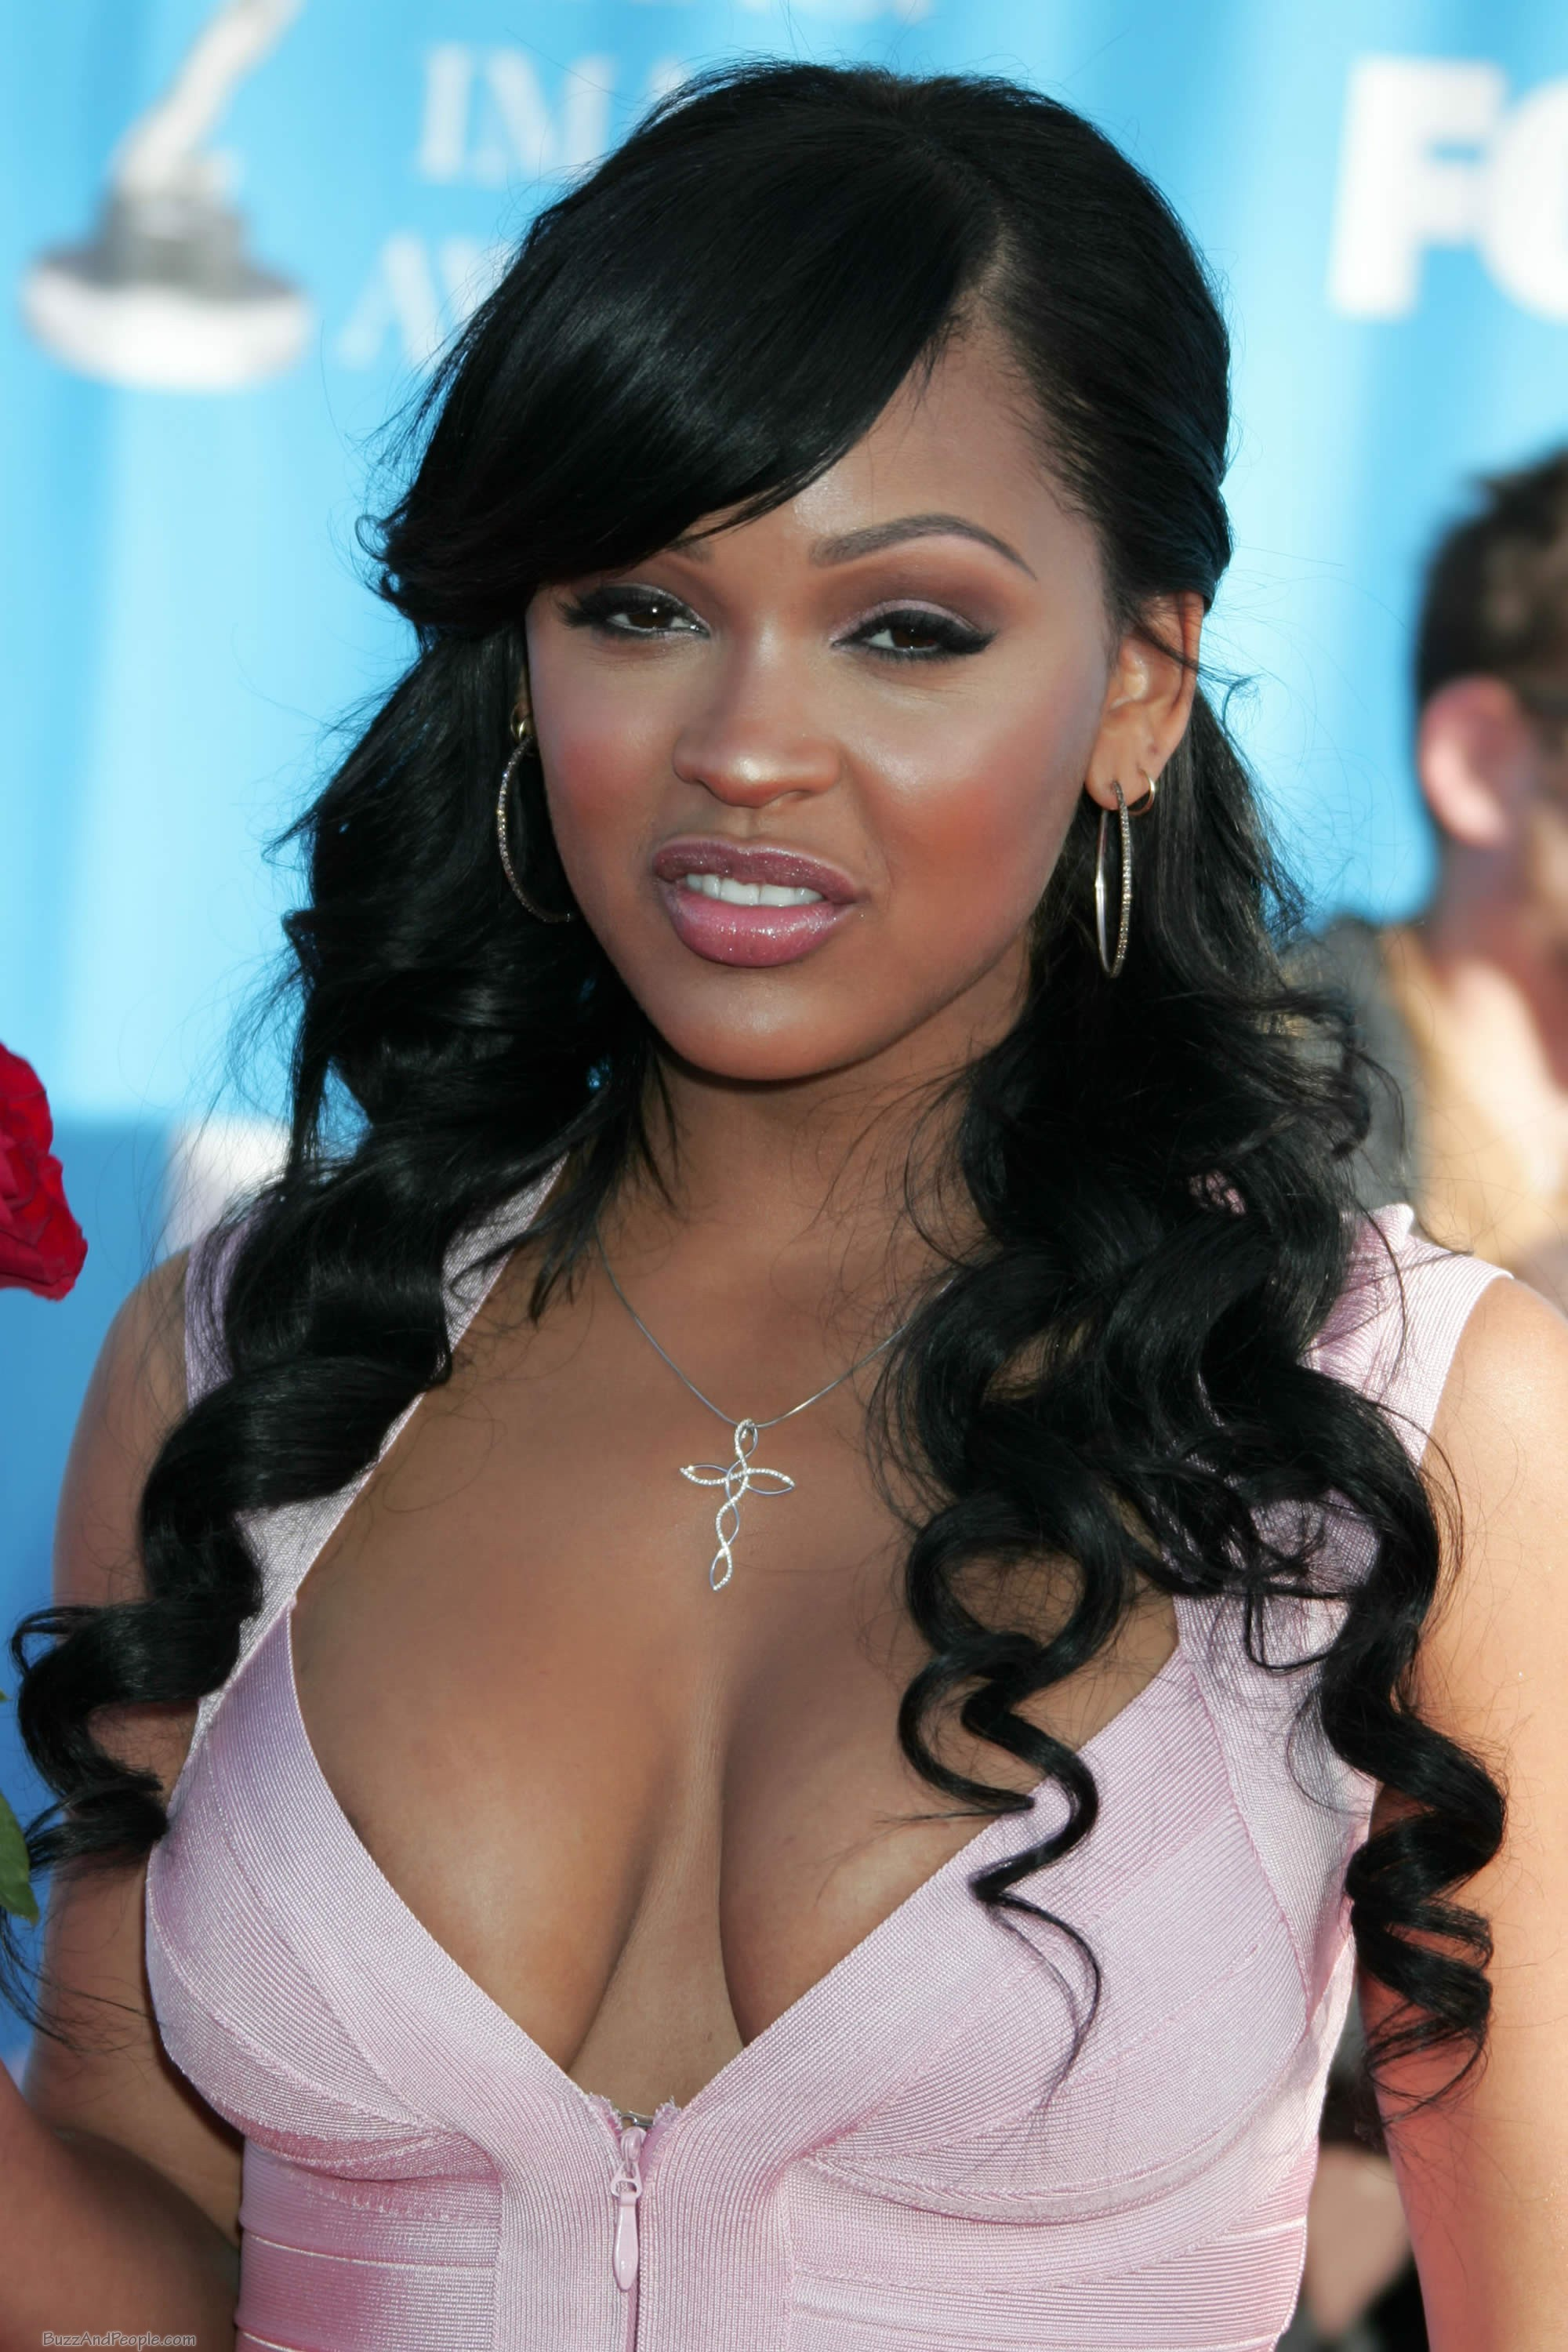 Meagan-Good-in-Minority-Report